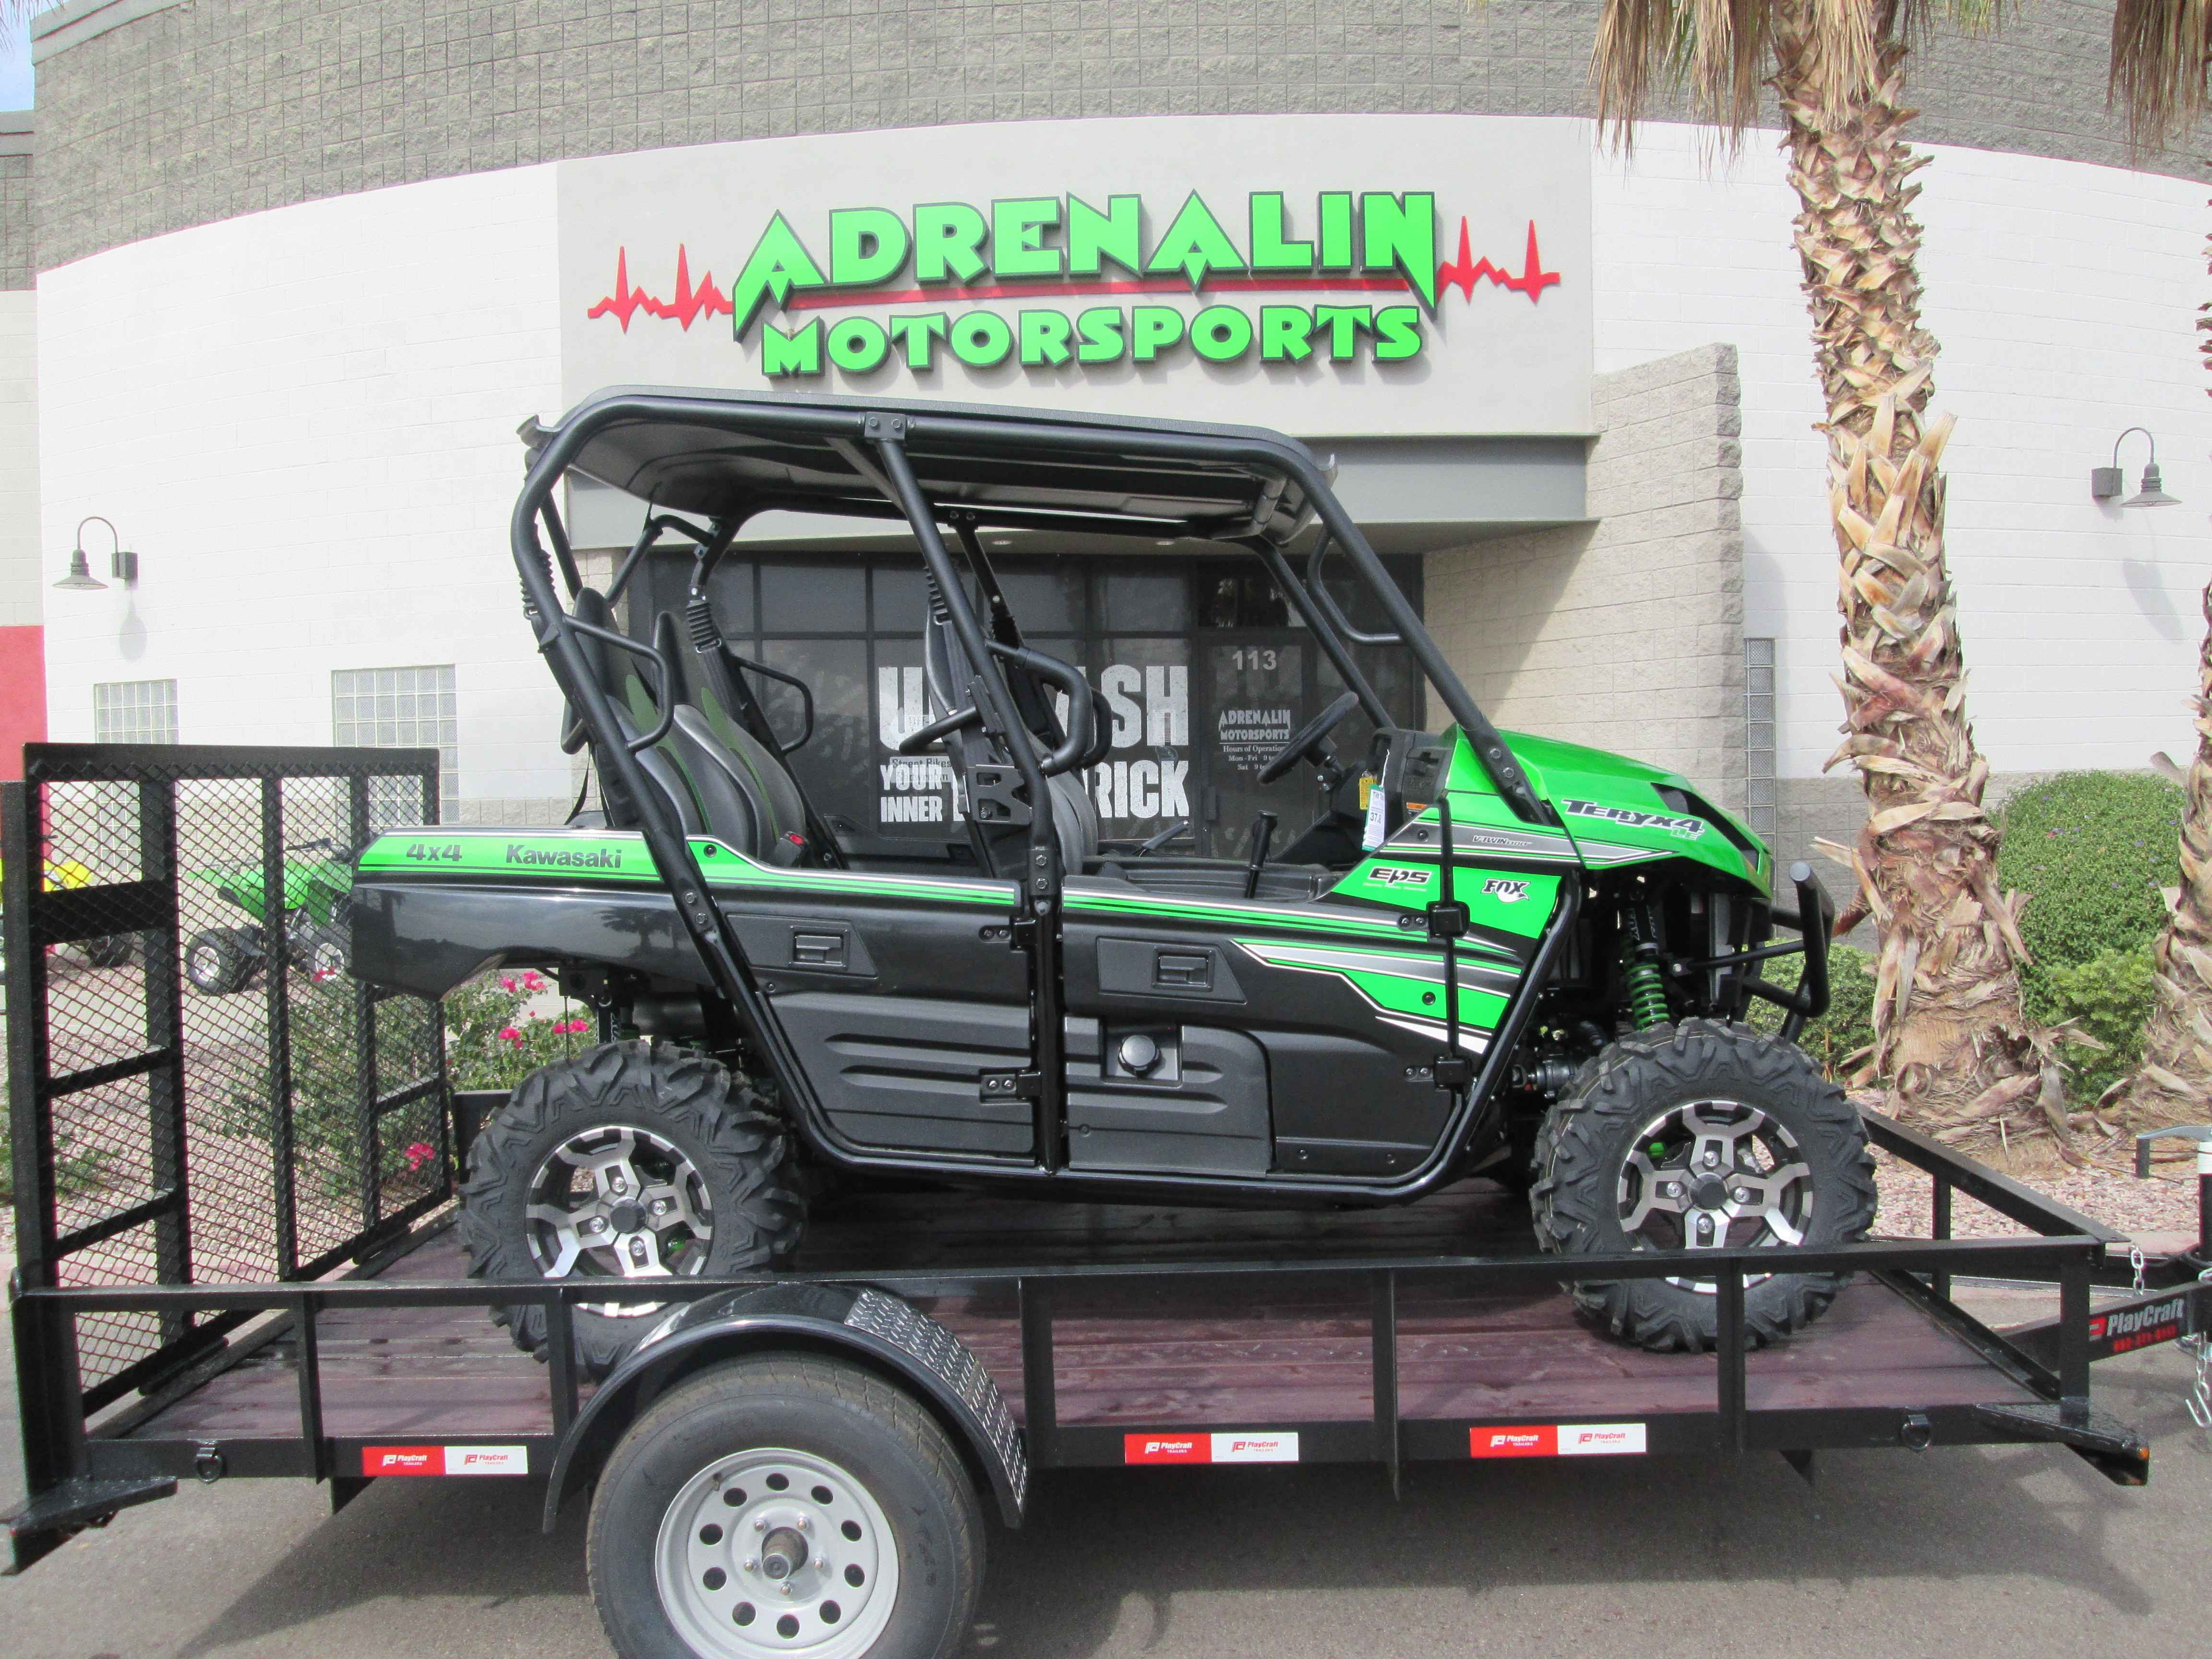 new 2018 kawasaki teryx 4 buy teryx or teryx 4 and ge atvs for sale in arizona on atv trades. Black Bedroom Furniture Sets. Home Design Ideas